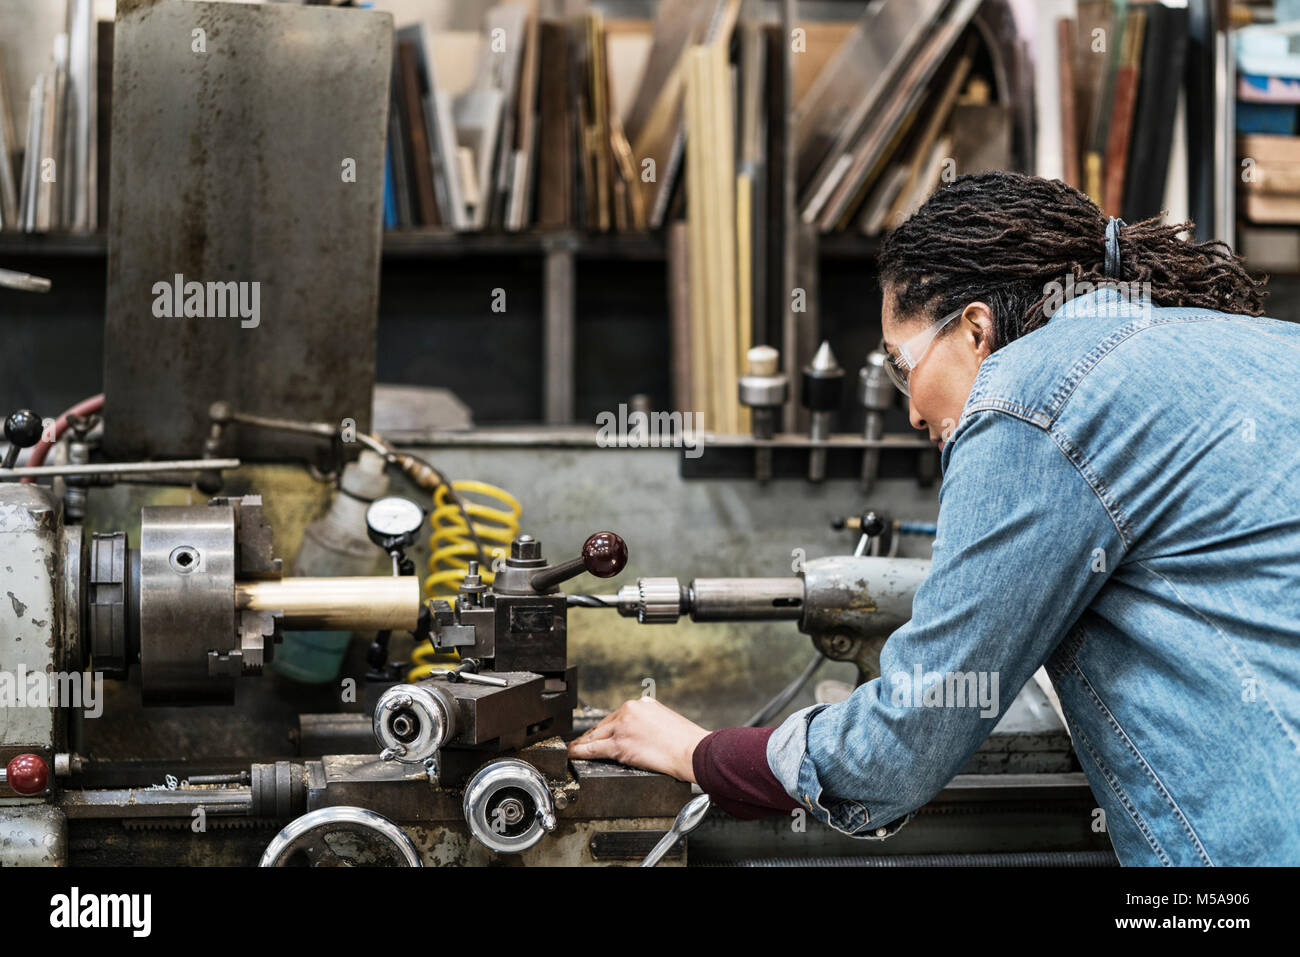 Woman wearing safety glasses standing in a metal workshop, working at a machine. - Stock Image